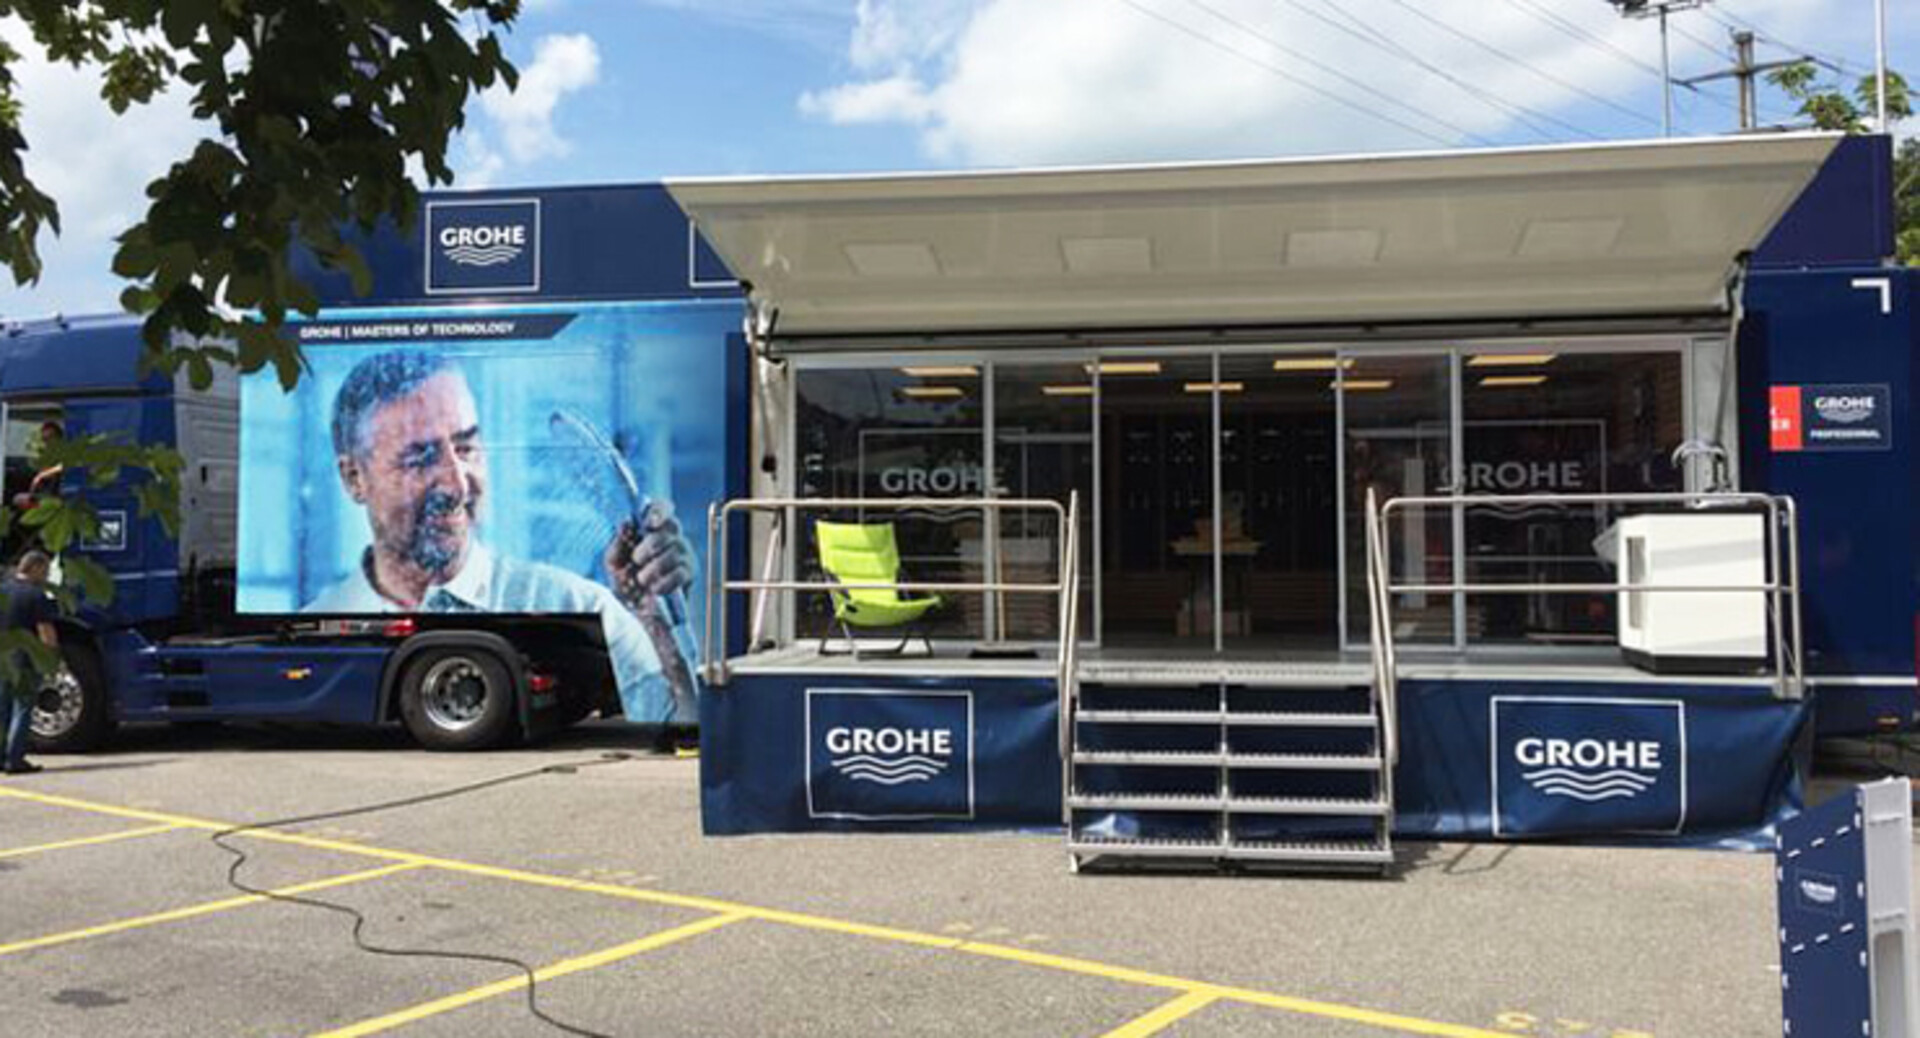 grohe-showtruck-2.JPG